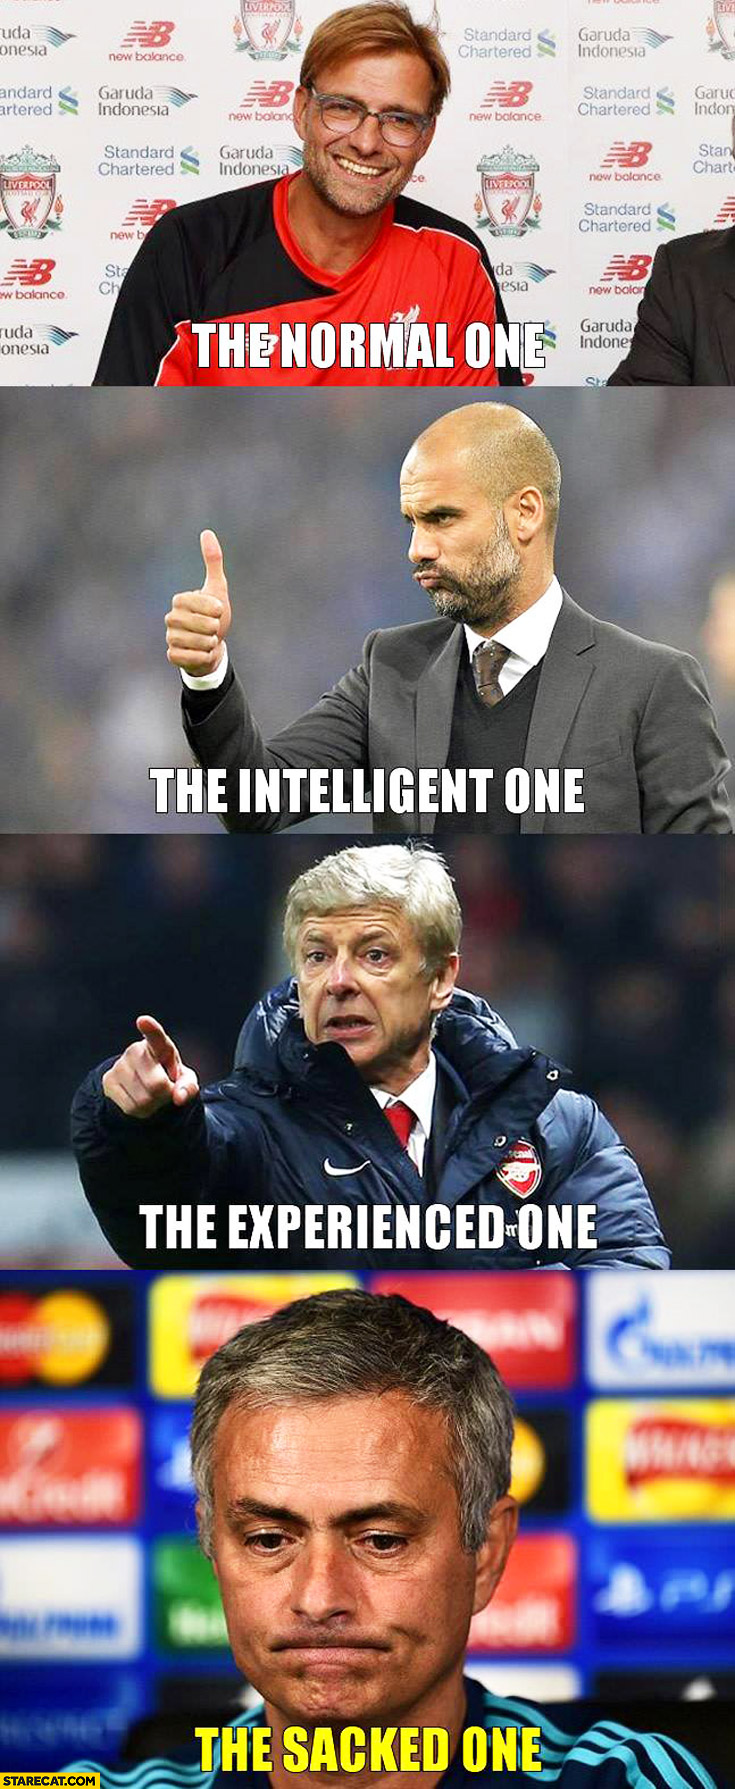 Football coaches: normal one, intelligent one, experienced one, sacked one